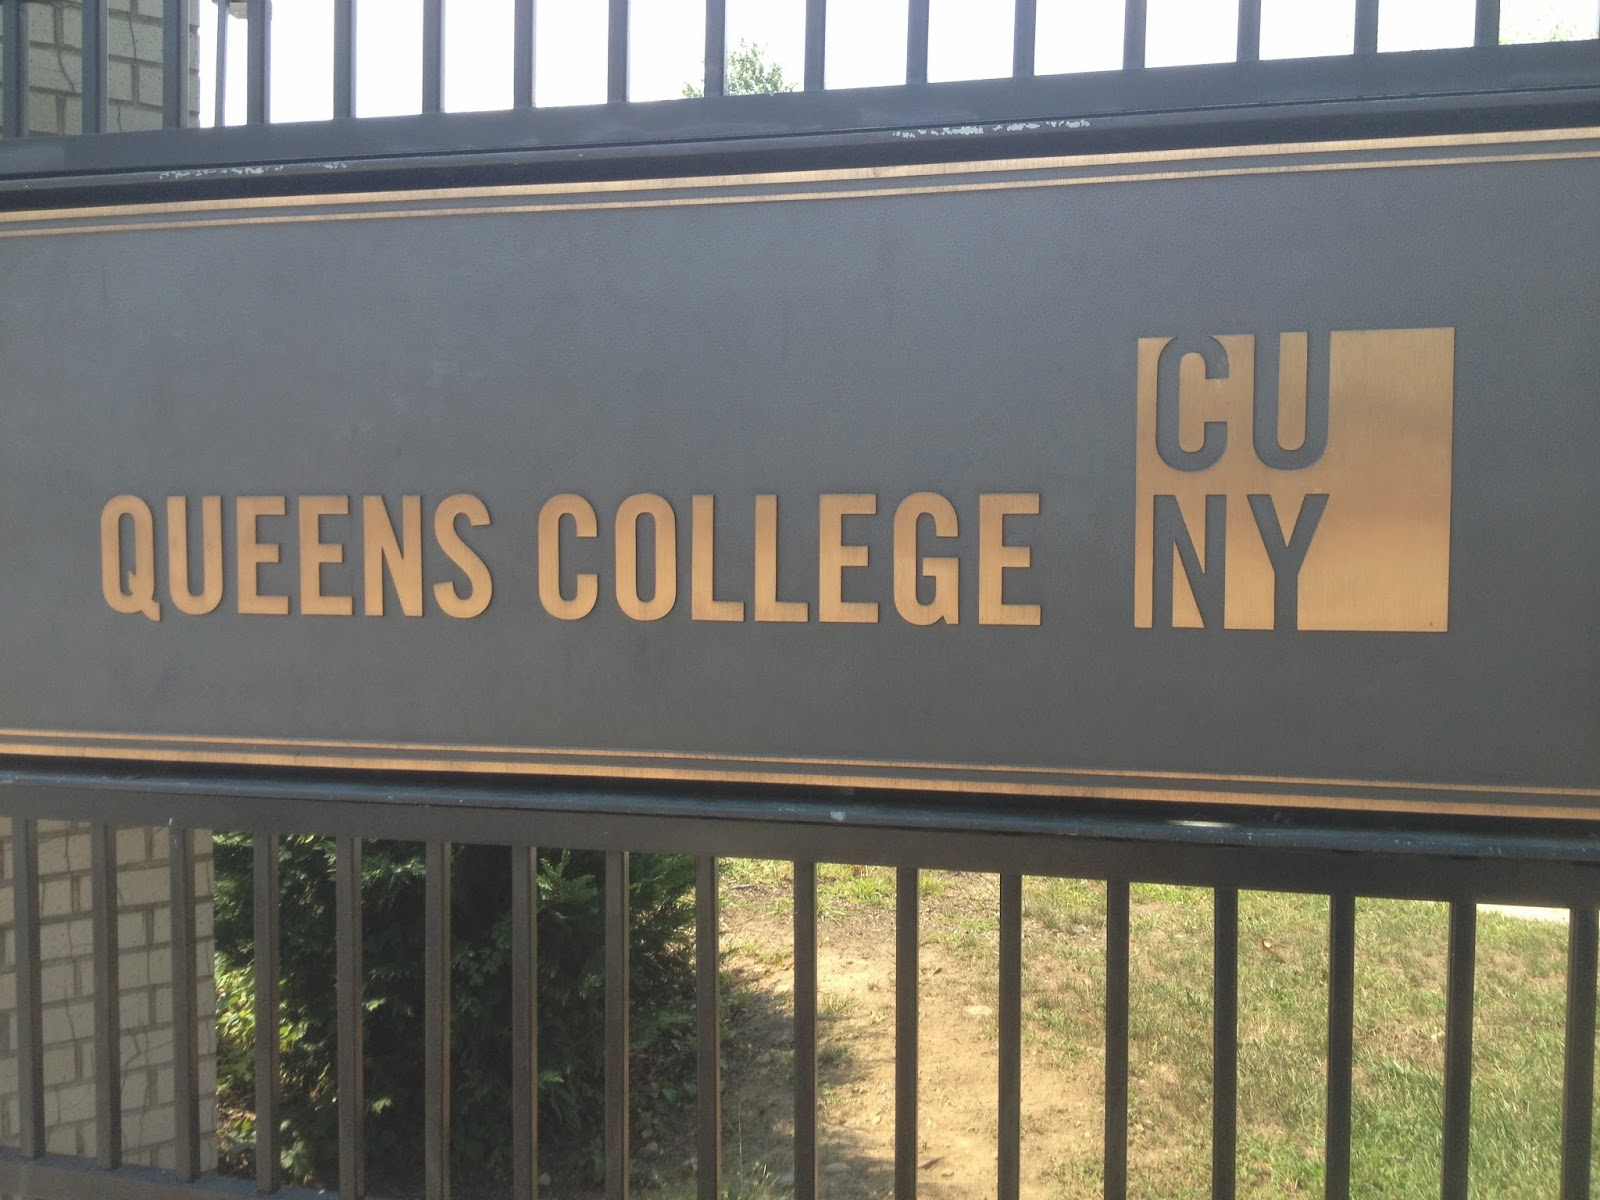 NYC Queens College